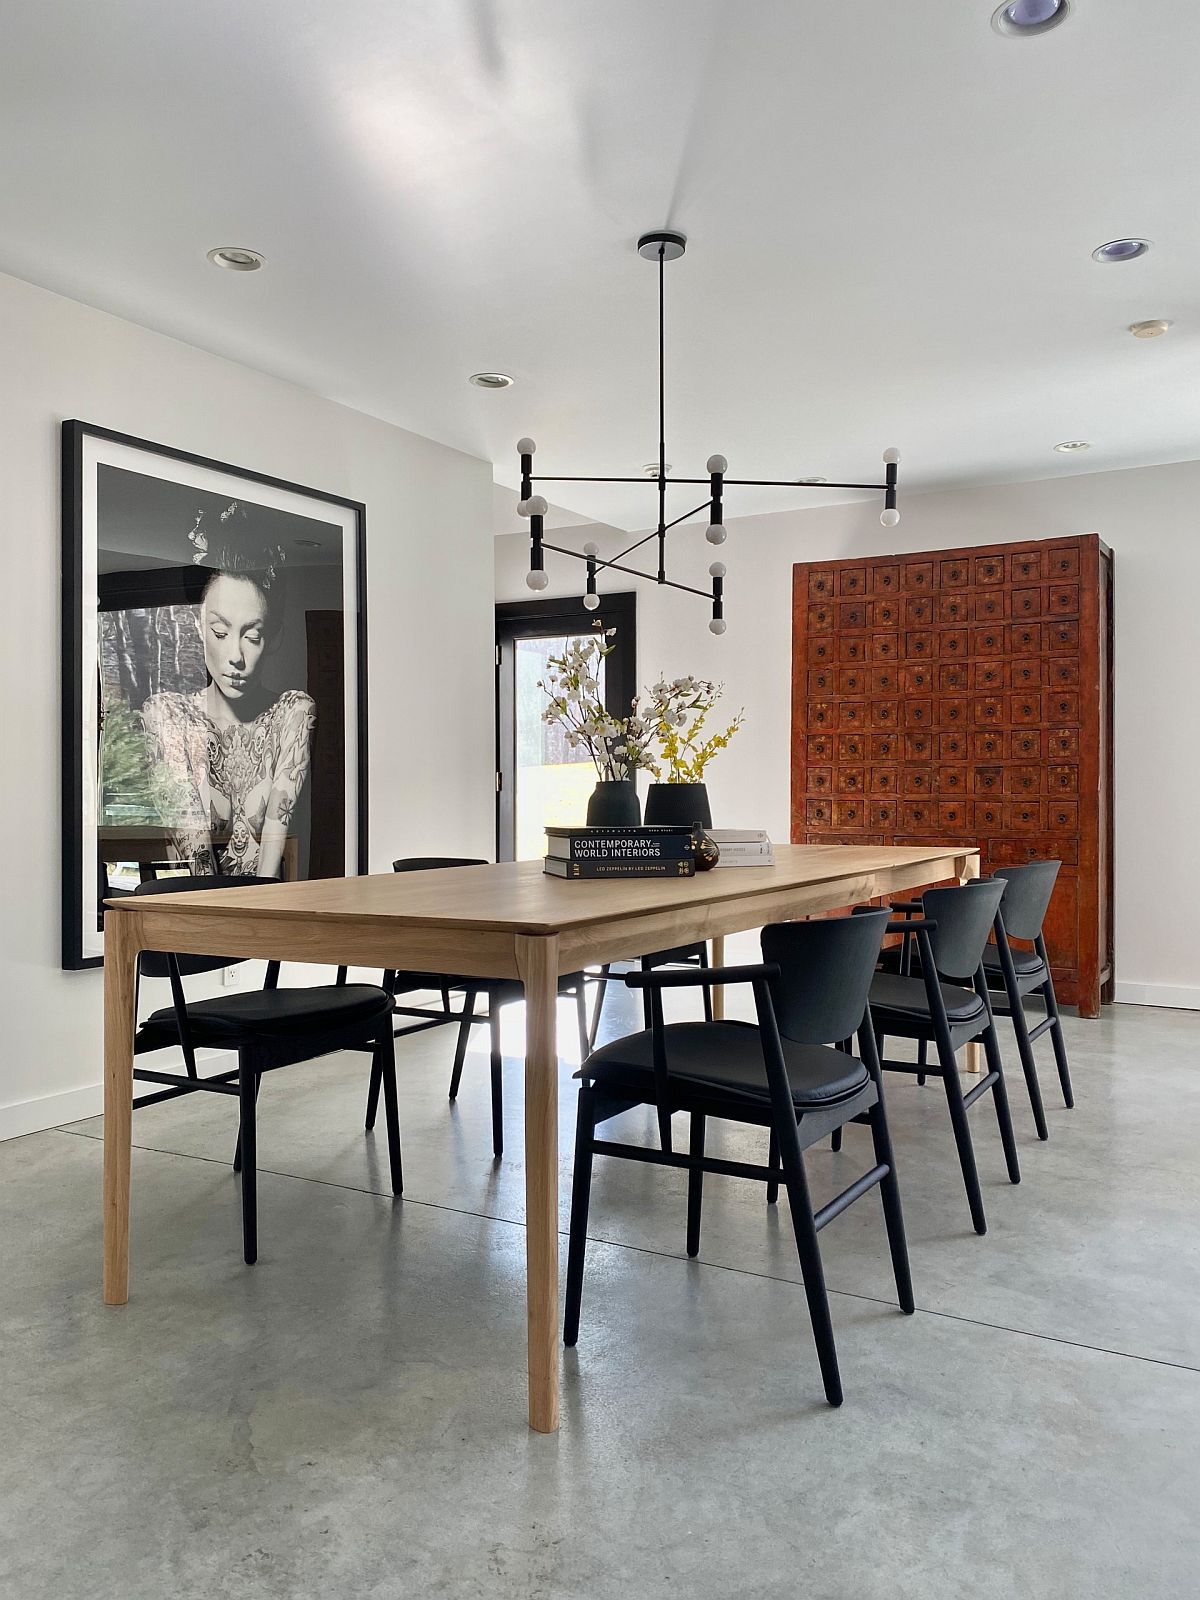 Use fabulous wall art pieces to give the minimal dining room a personality of its own